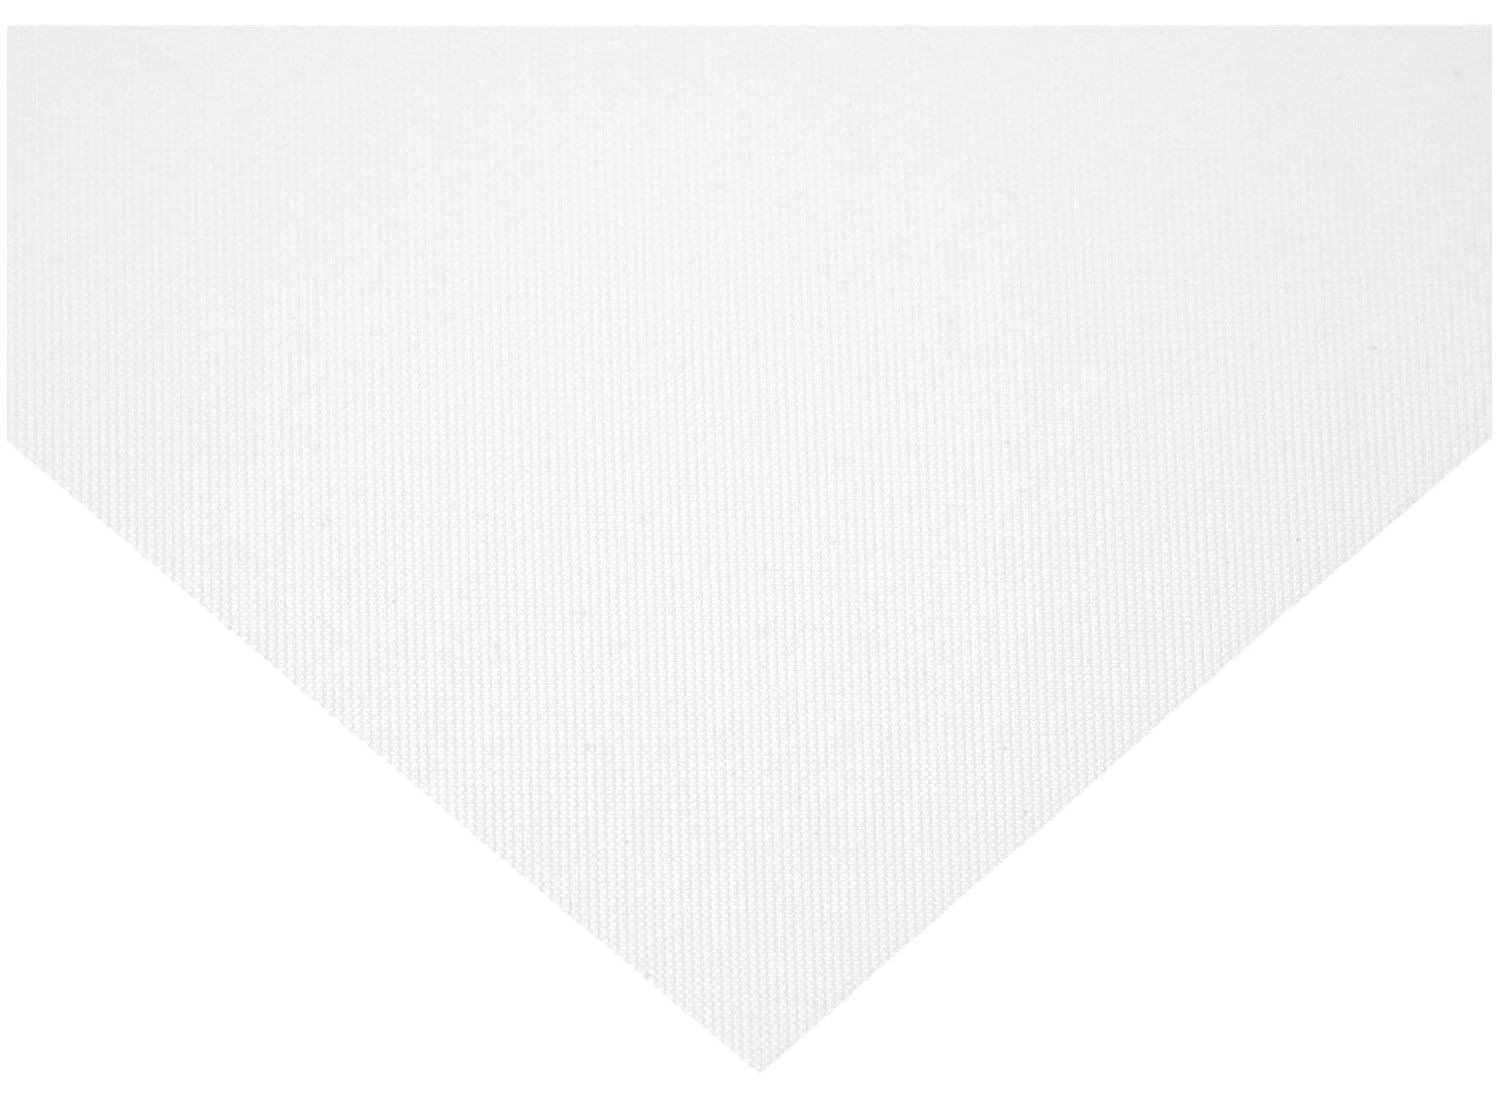 12 Length Opaque Off-White 12 Width 2000 microns Mesh Size Nylon 6 Woven Mesh Sheet 53/% Open Area 12 Width 12 Length Small Parts CMN-2000-C